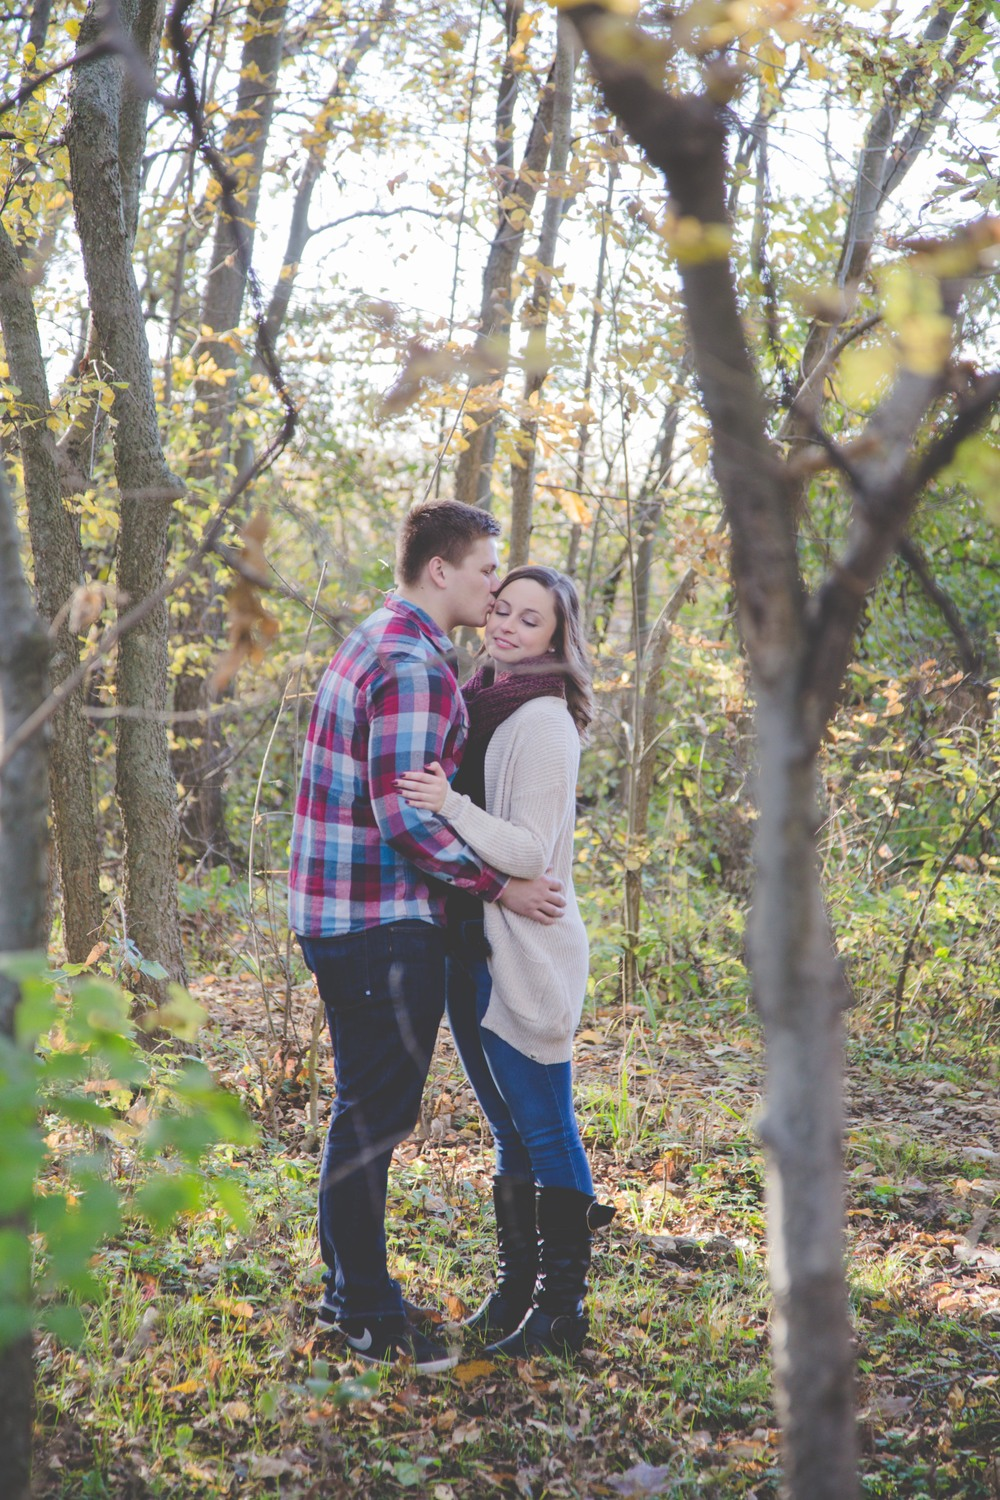 2015 Nicole and Curt smallAlexandriaPhotography0M4A1040.jpg